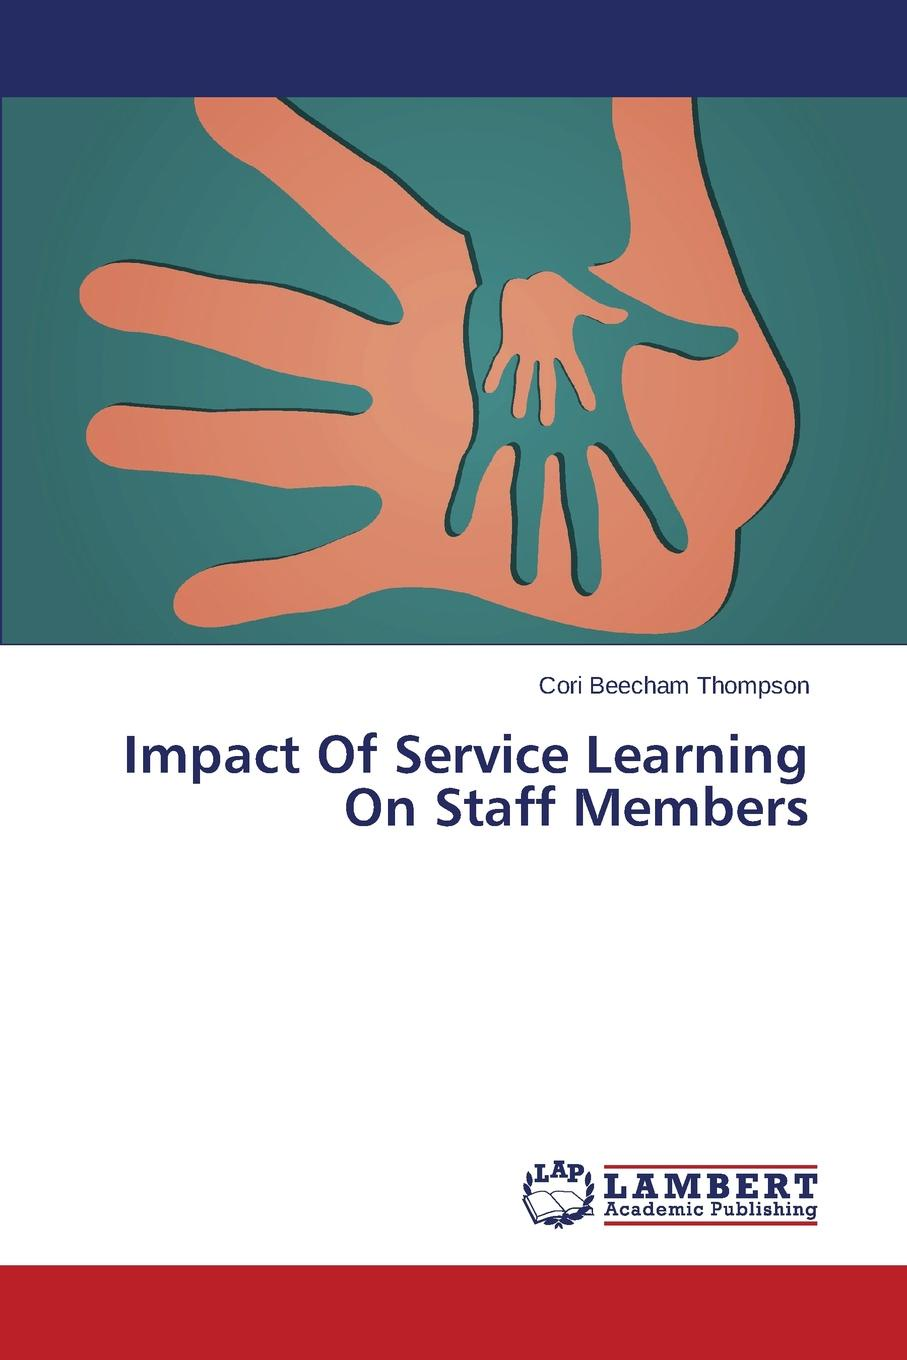 Beecham Thompson Cori Impact Of Service Learning On Staff Members service learning pedagogy how does it measure up